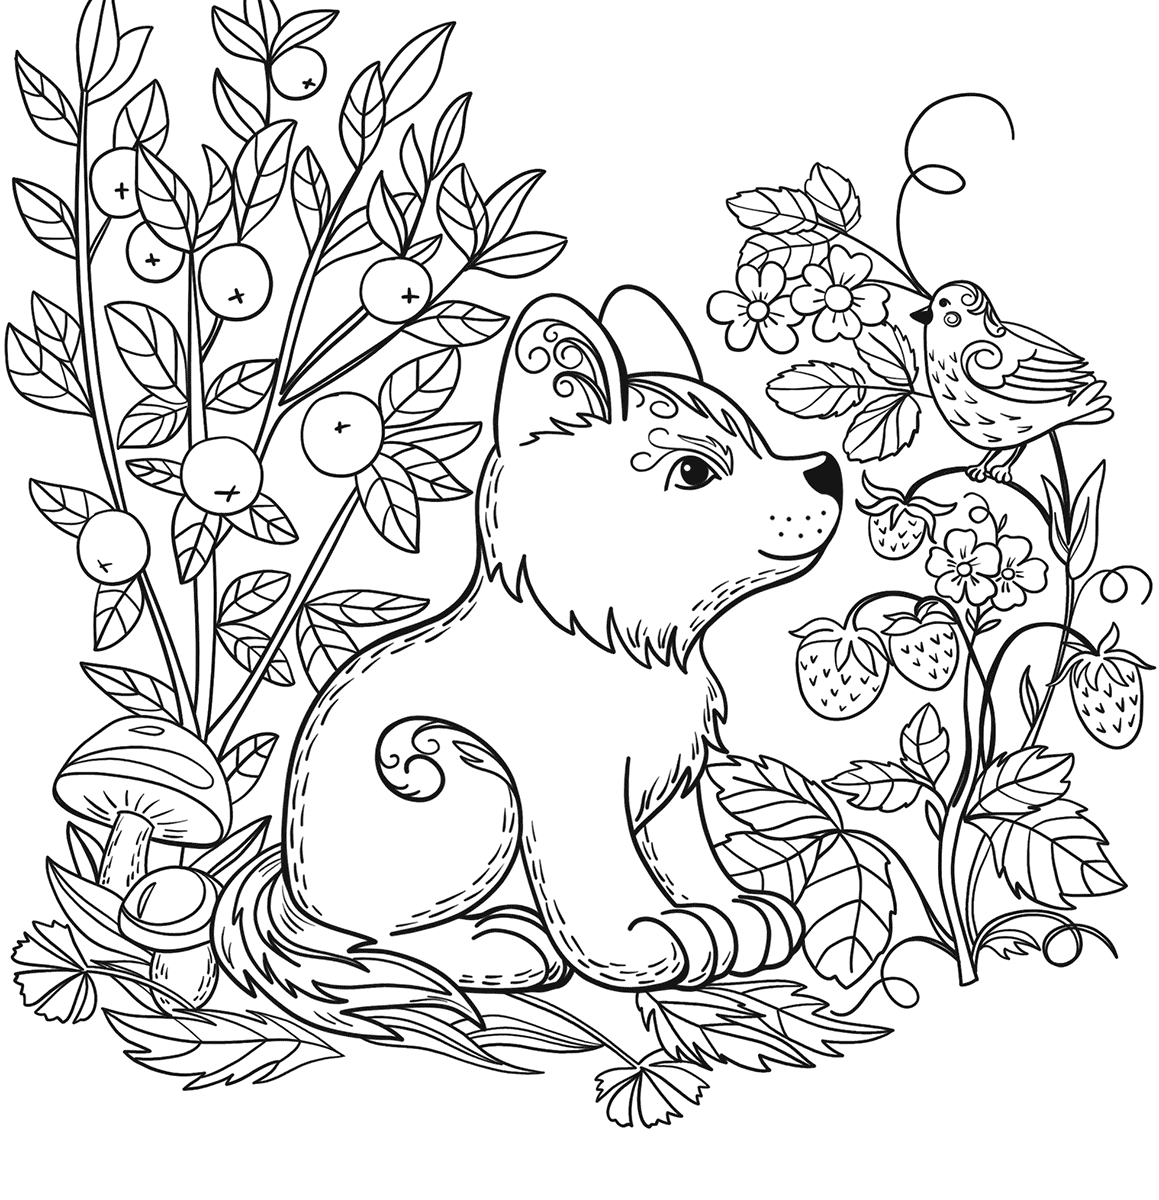 1159x1200 Drawn Forest Simple And Color Book Printable Coloring Pages Free